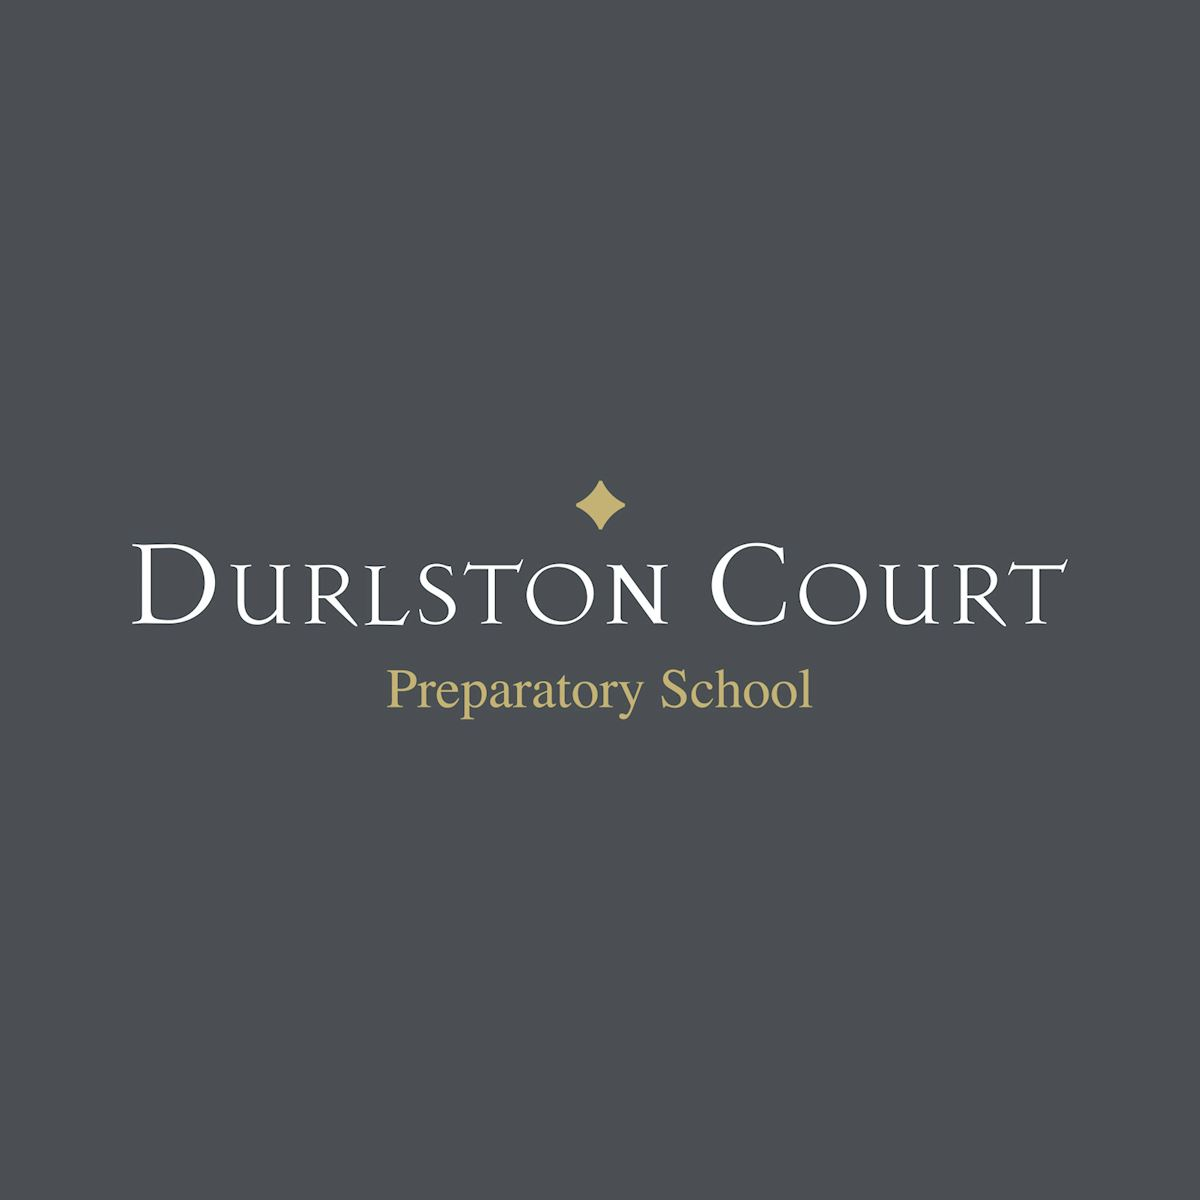 Durlston Court Prep School